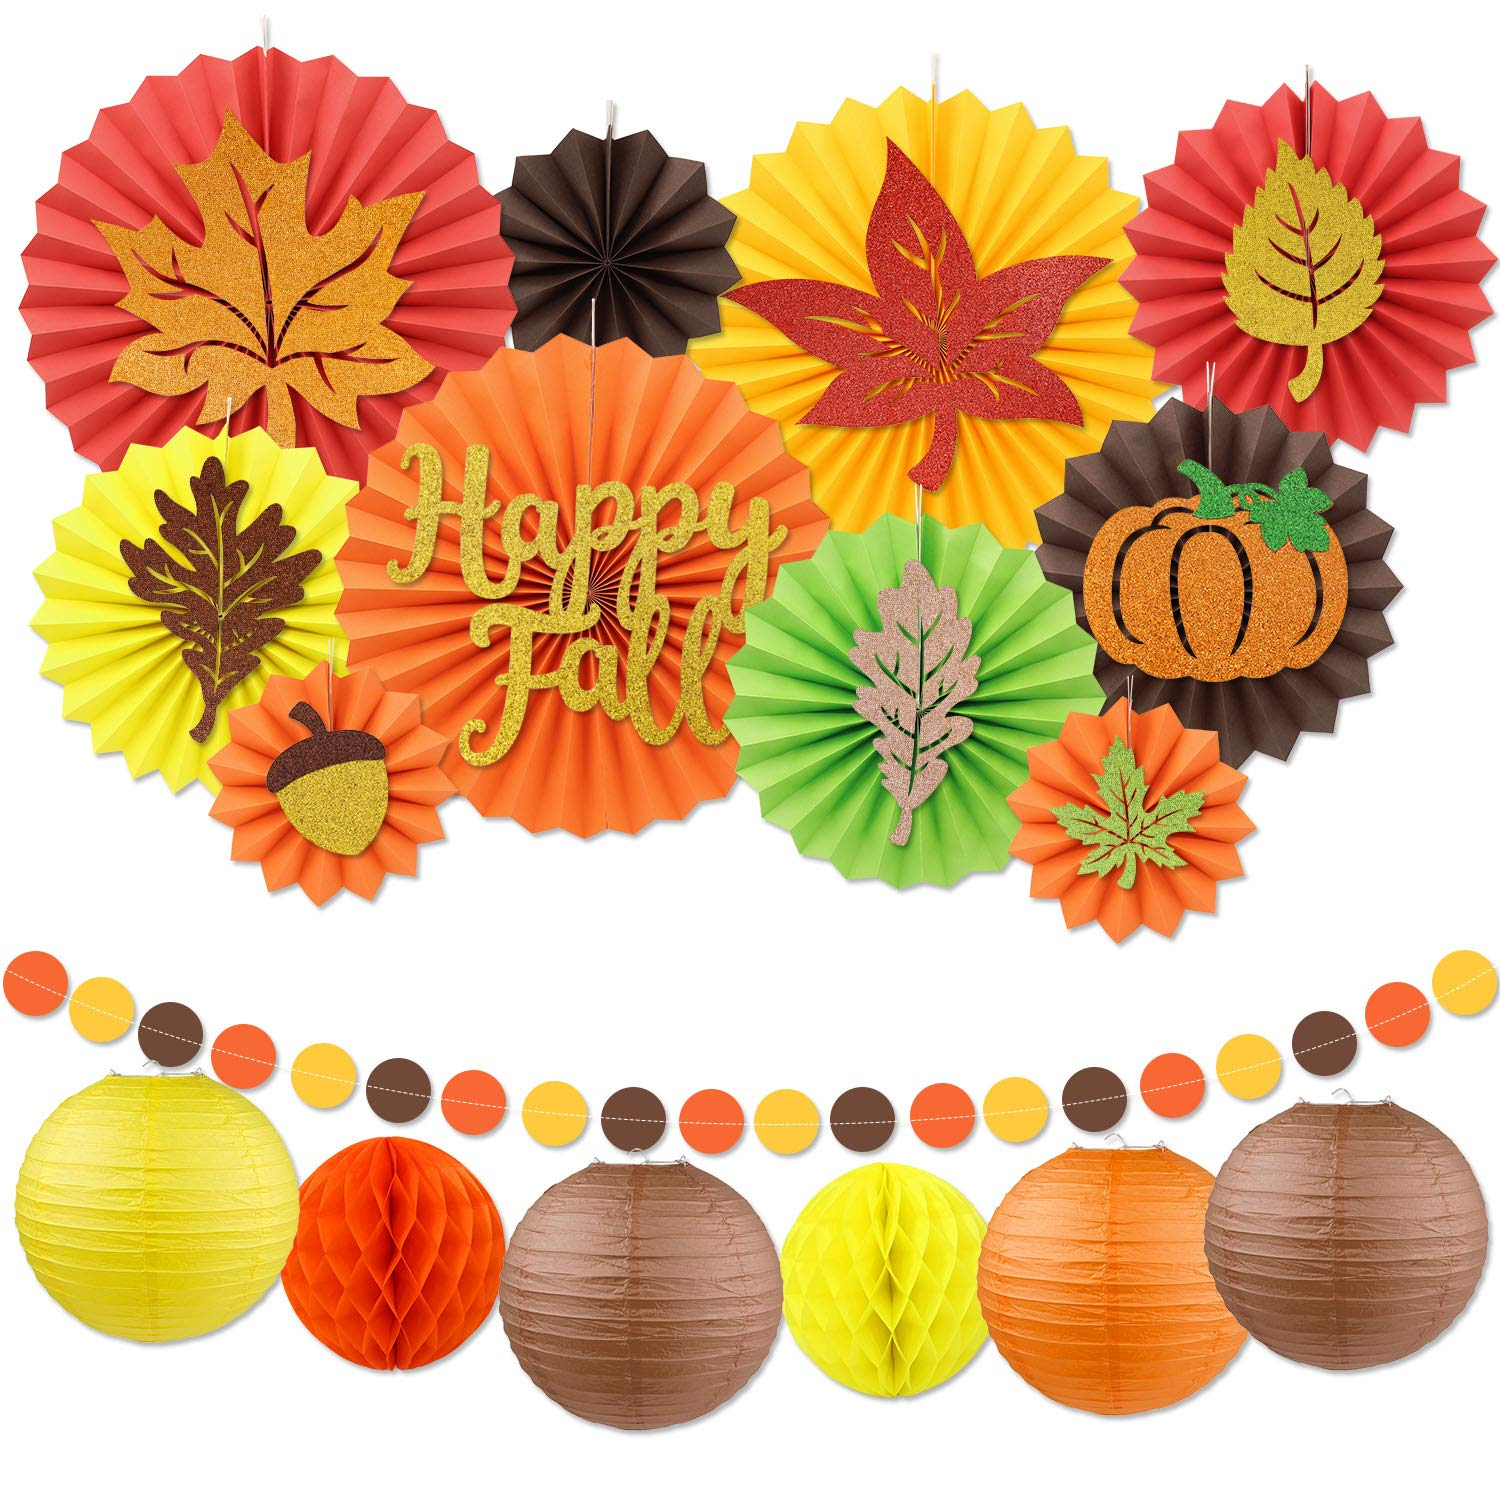 Fall Party Decoration Set Festival Thanksgiving Party Supplies Maple Leaves Pumpkin Hanging Paper Fans Lanterns Dots Garland for Birthday Parties Wedding Decor Autumn Harvest Time Home Decor by Distaratie